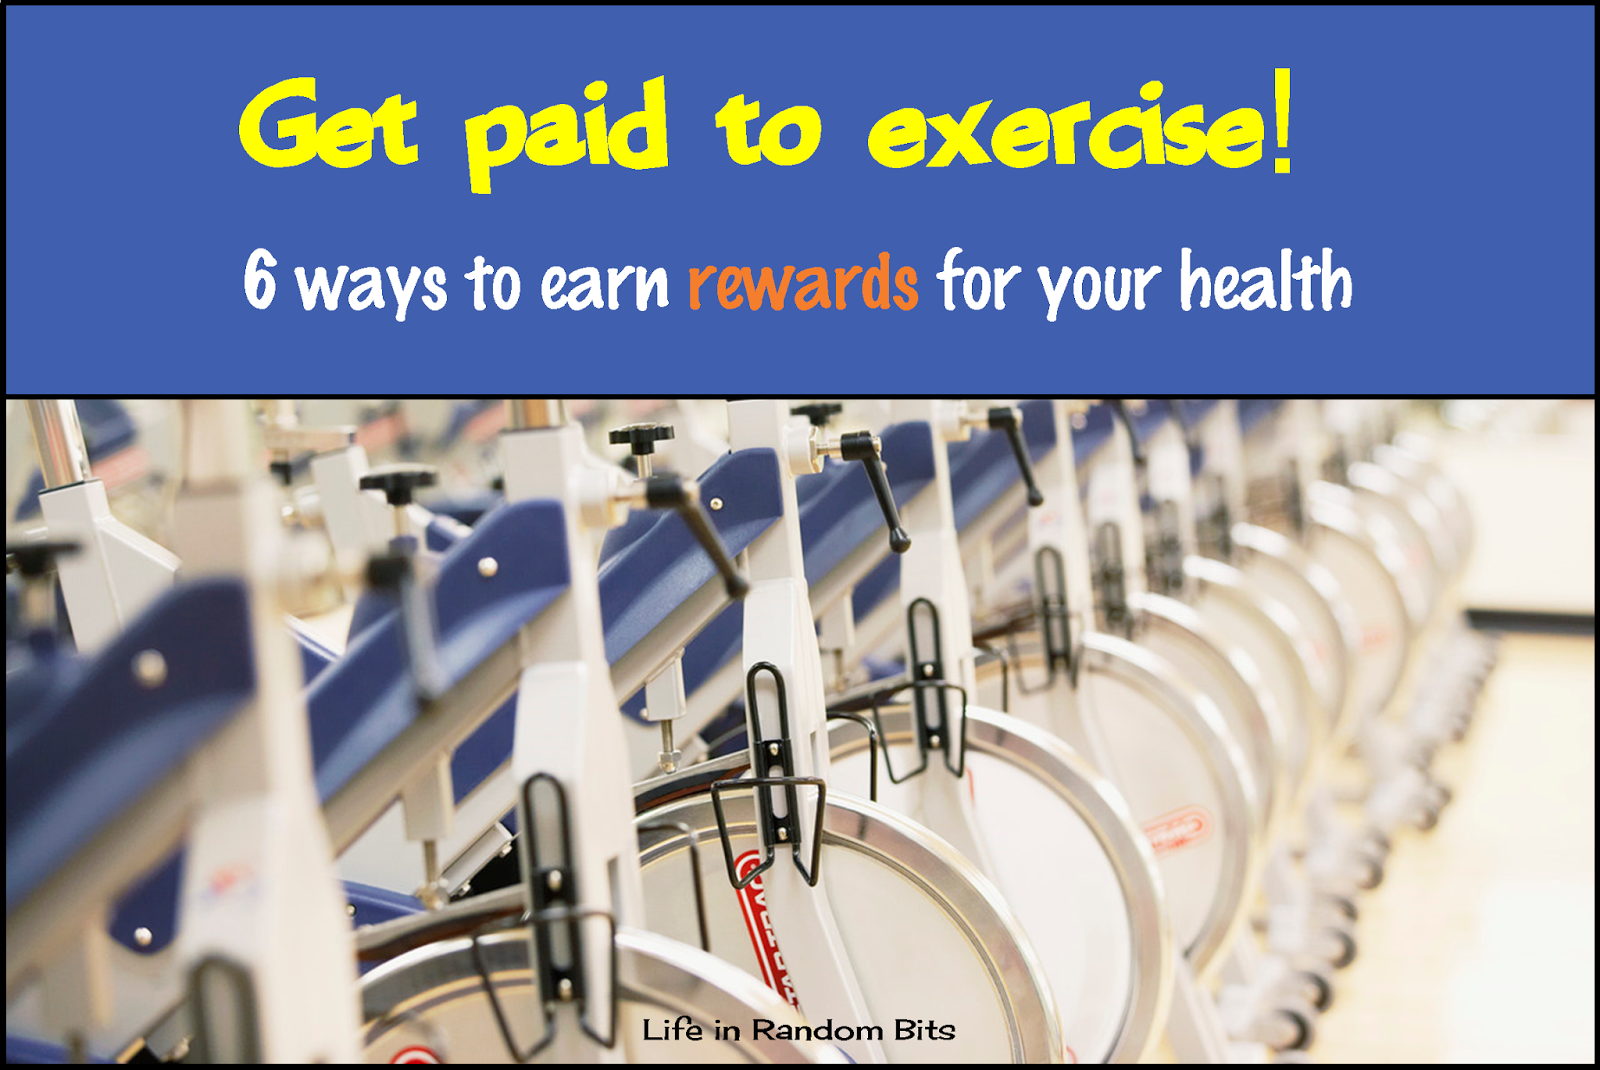 6 ways to earn rewards for exercise & your health. #exercise #apps #rewards